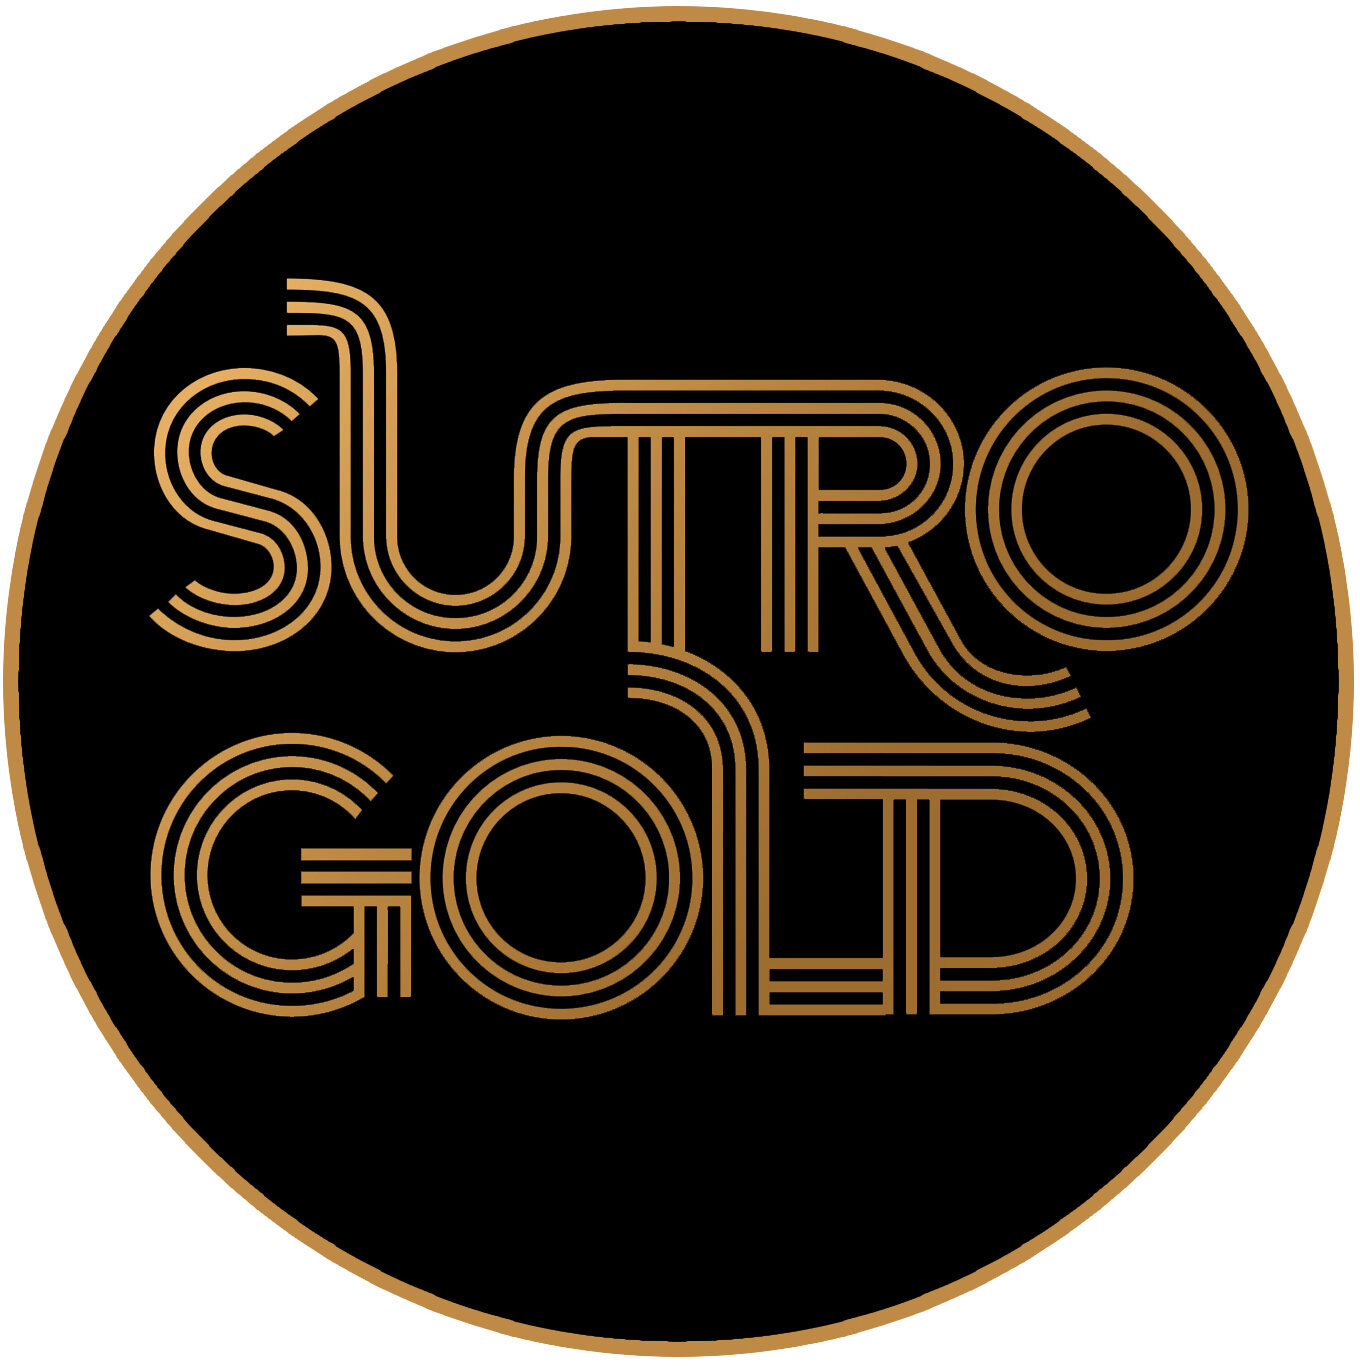 Sutro Gold - 10% off all hair removal & tanning services upon 1st visit(ask us about our referral program!)